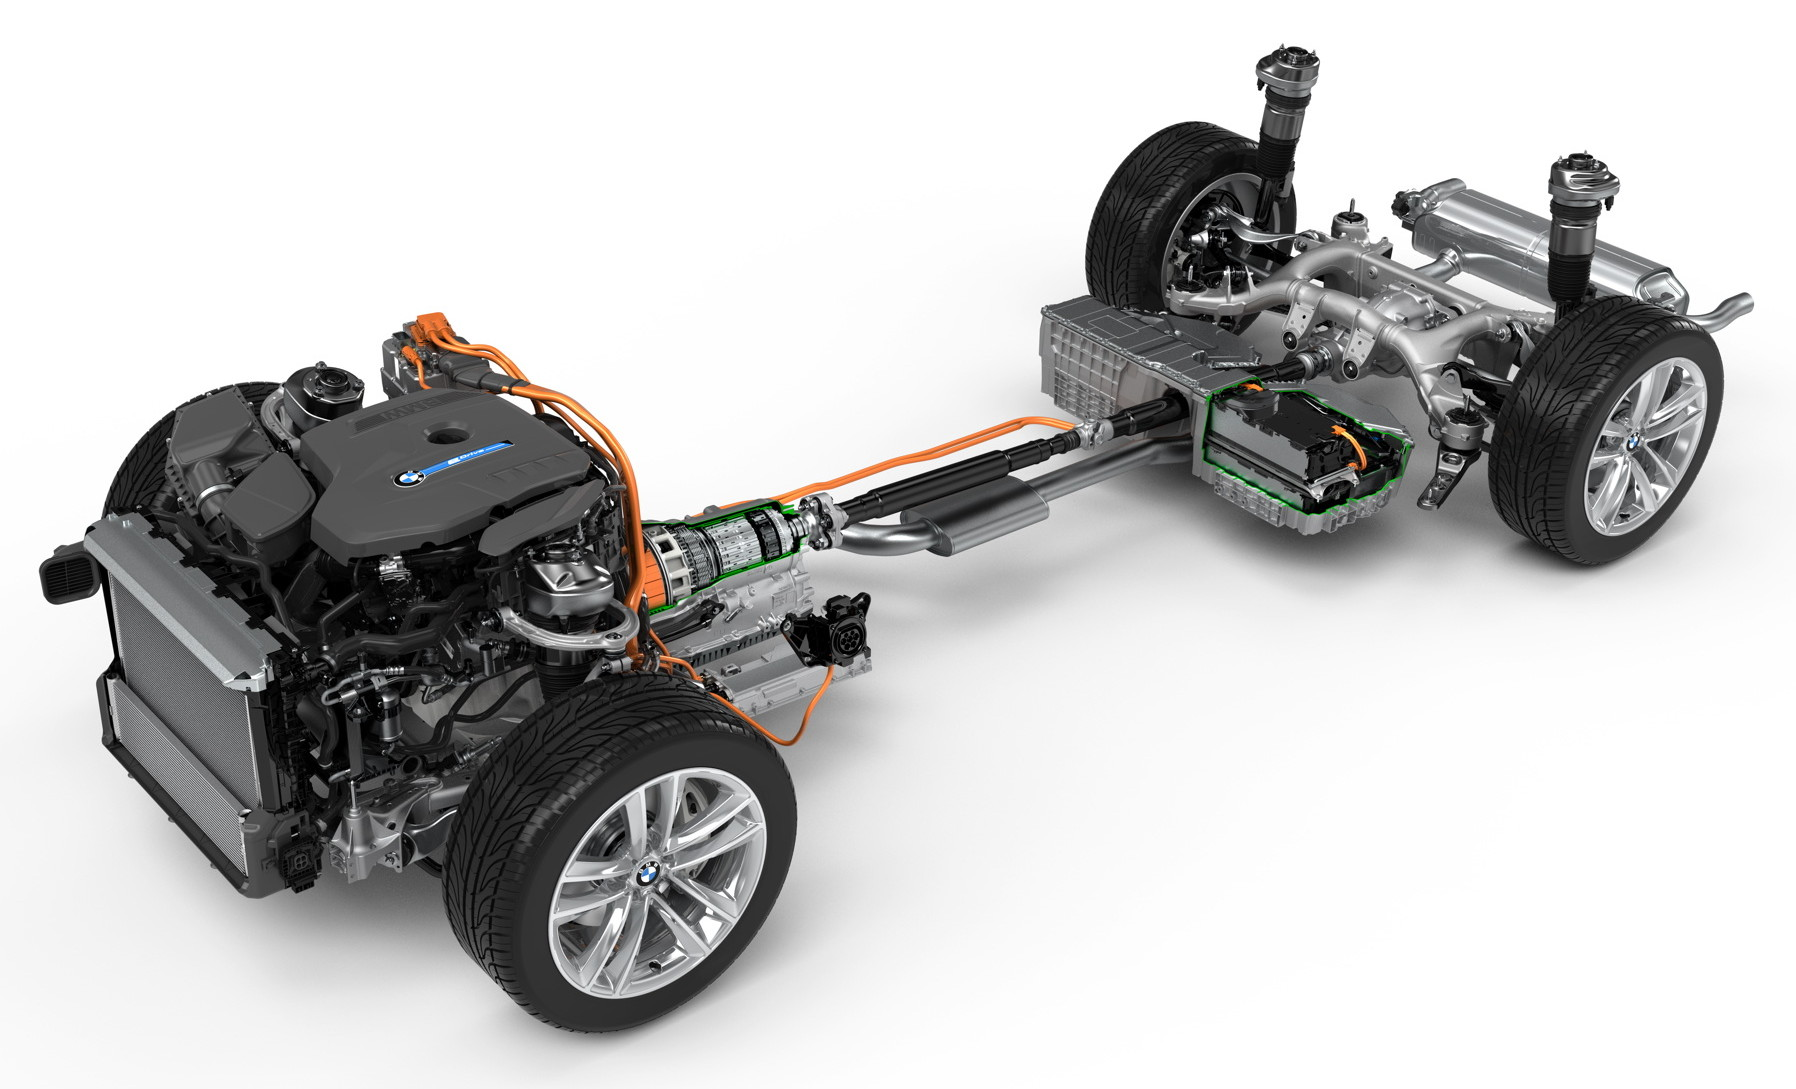 BMW 740e iPerformance plug-in hybrid electric vehicle (PHEV) powertrain and drivetrain